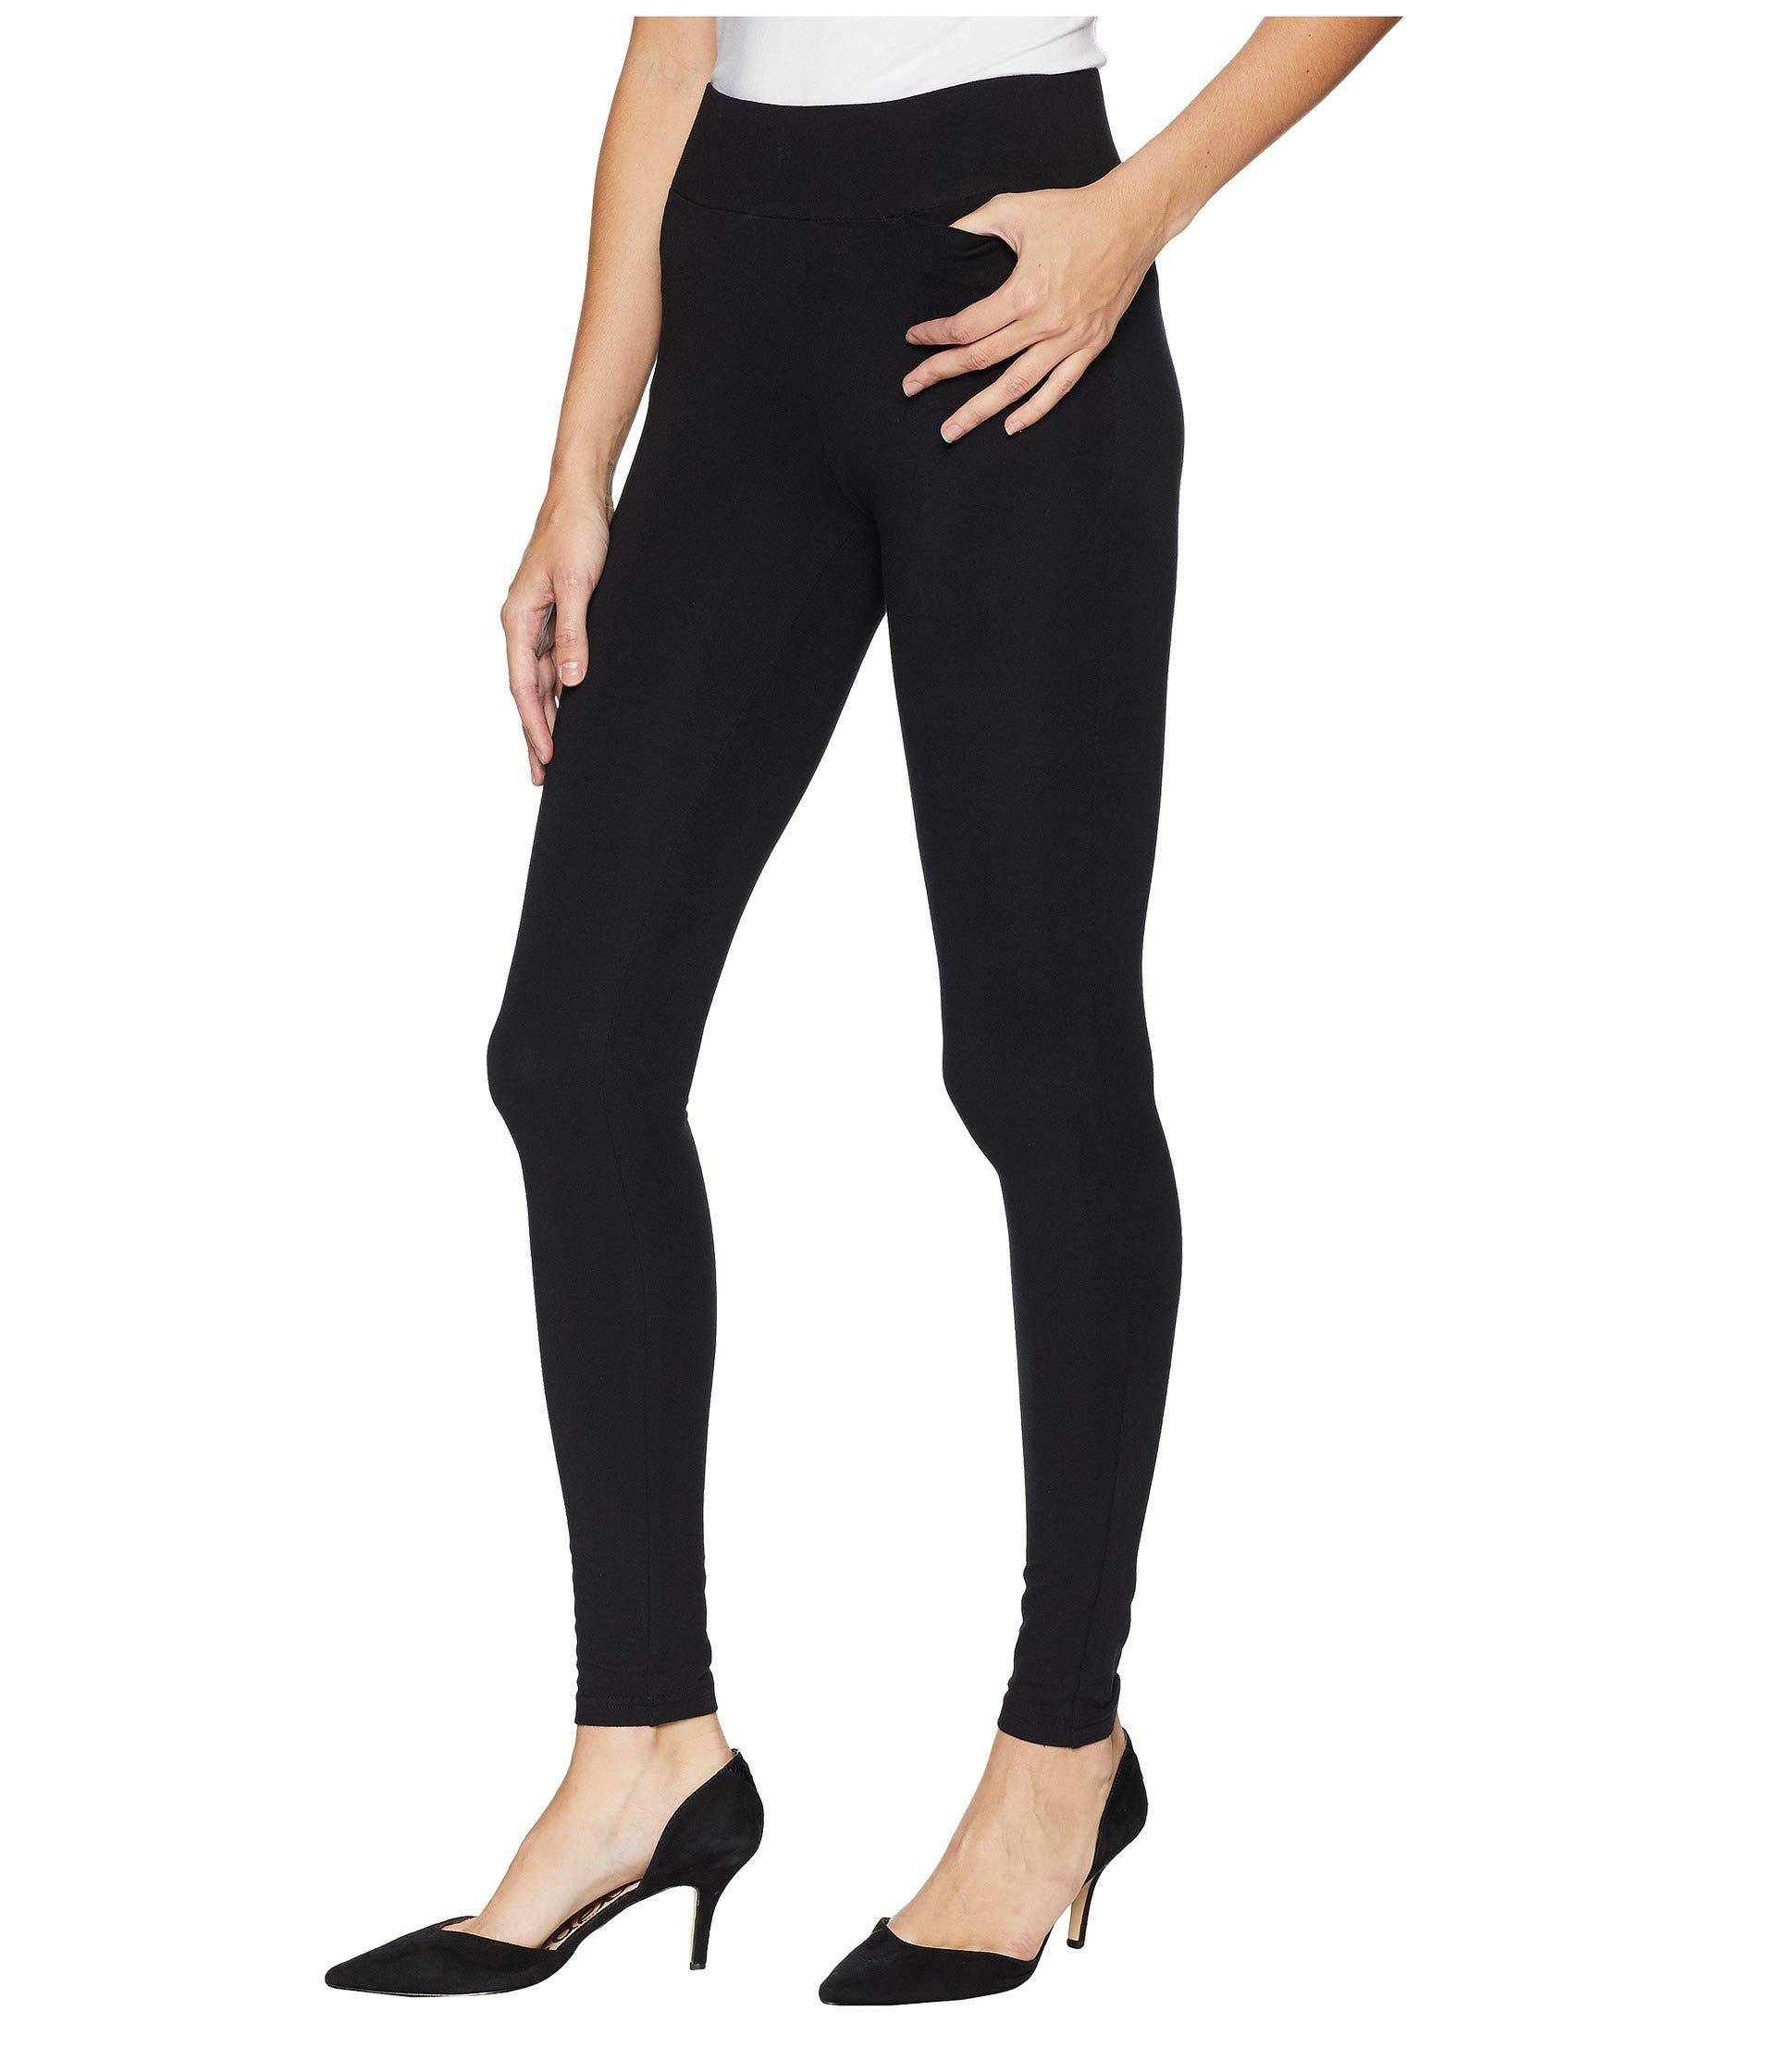 2d55d145704da4 Lyst - Hue Hold It Ultra Leggings With Wide Waistband And Hidden Pocket  (black) Women's Casual Pants in Black